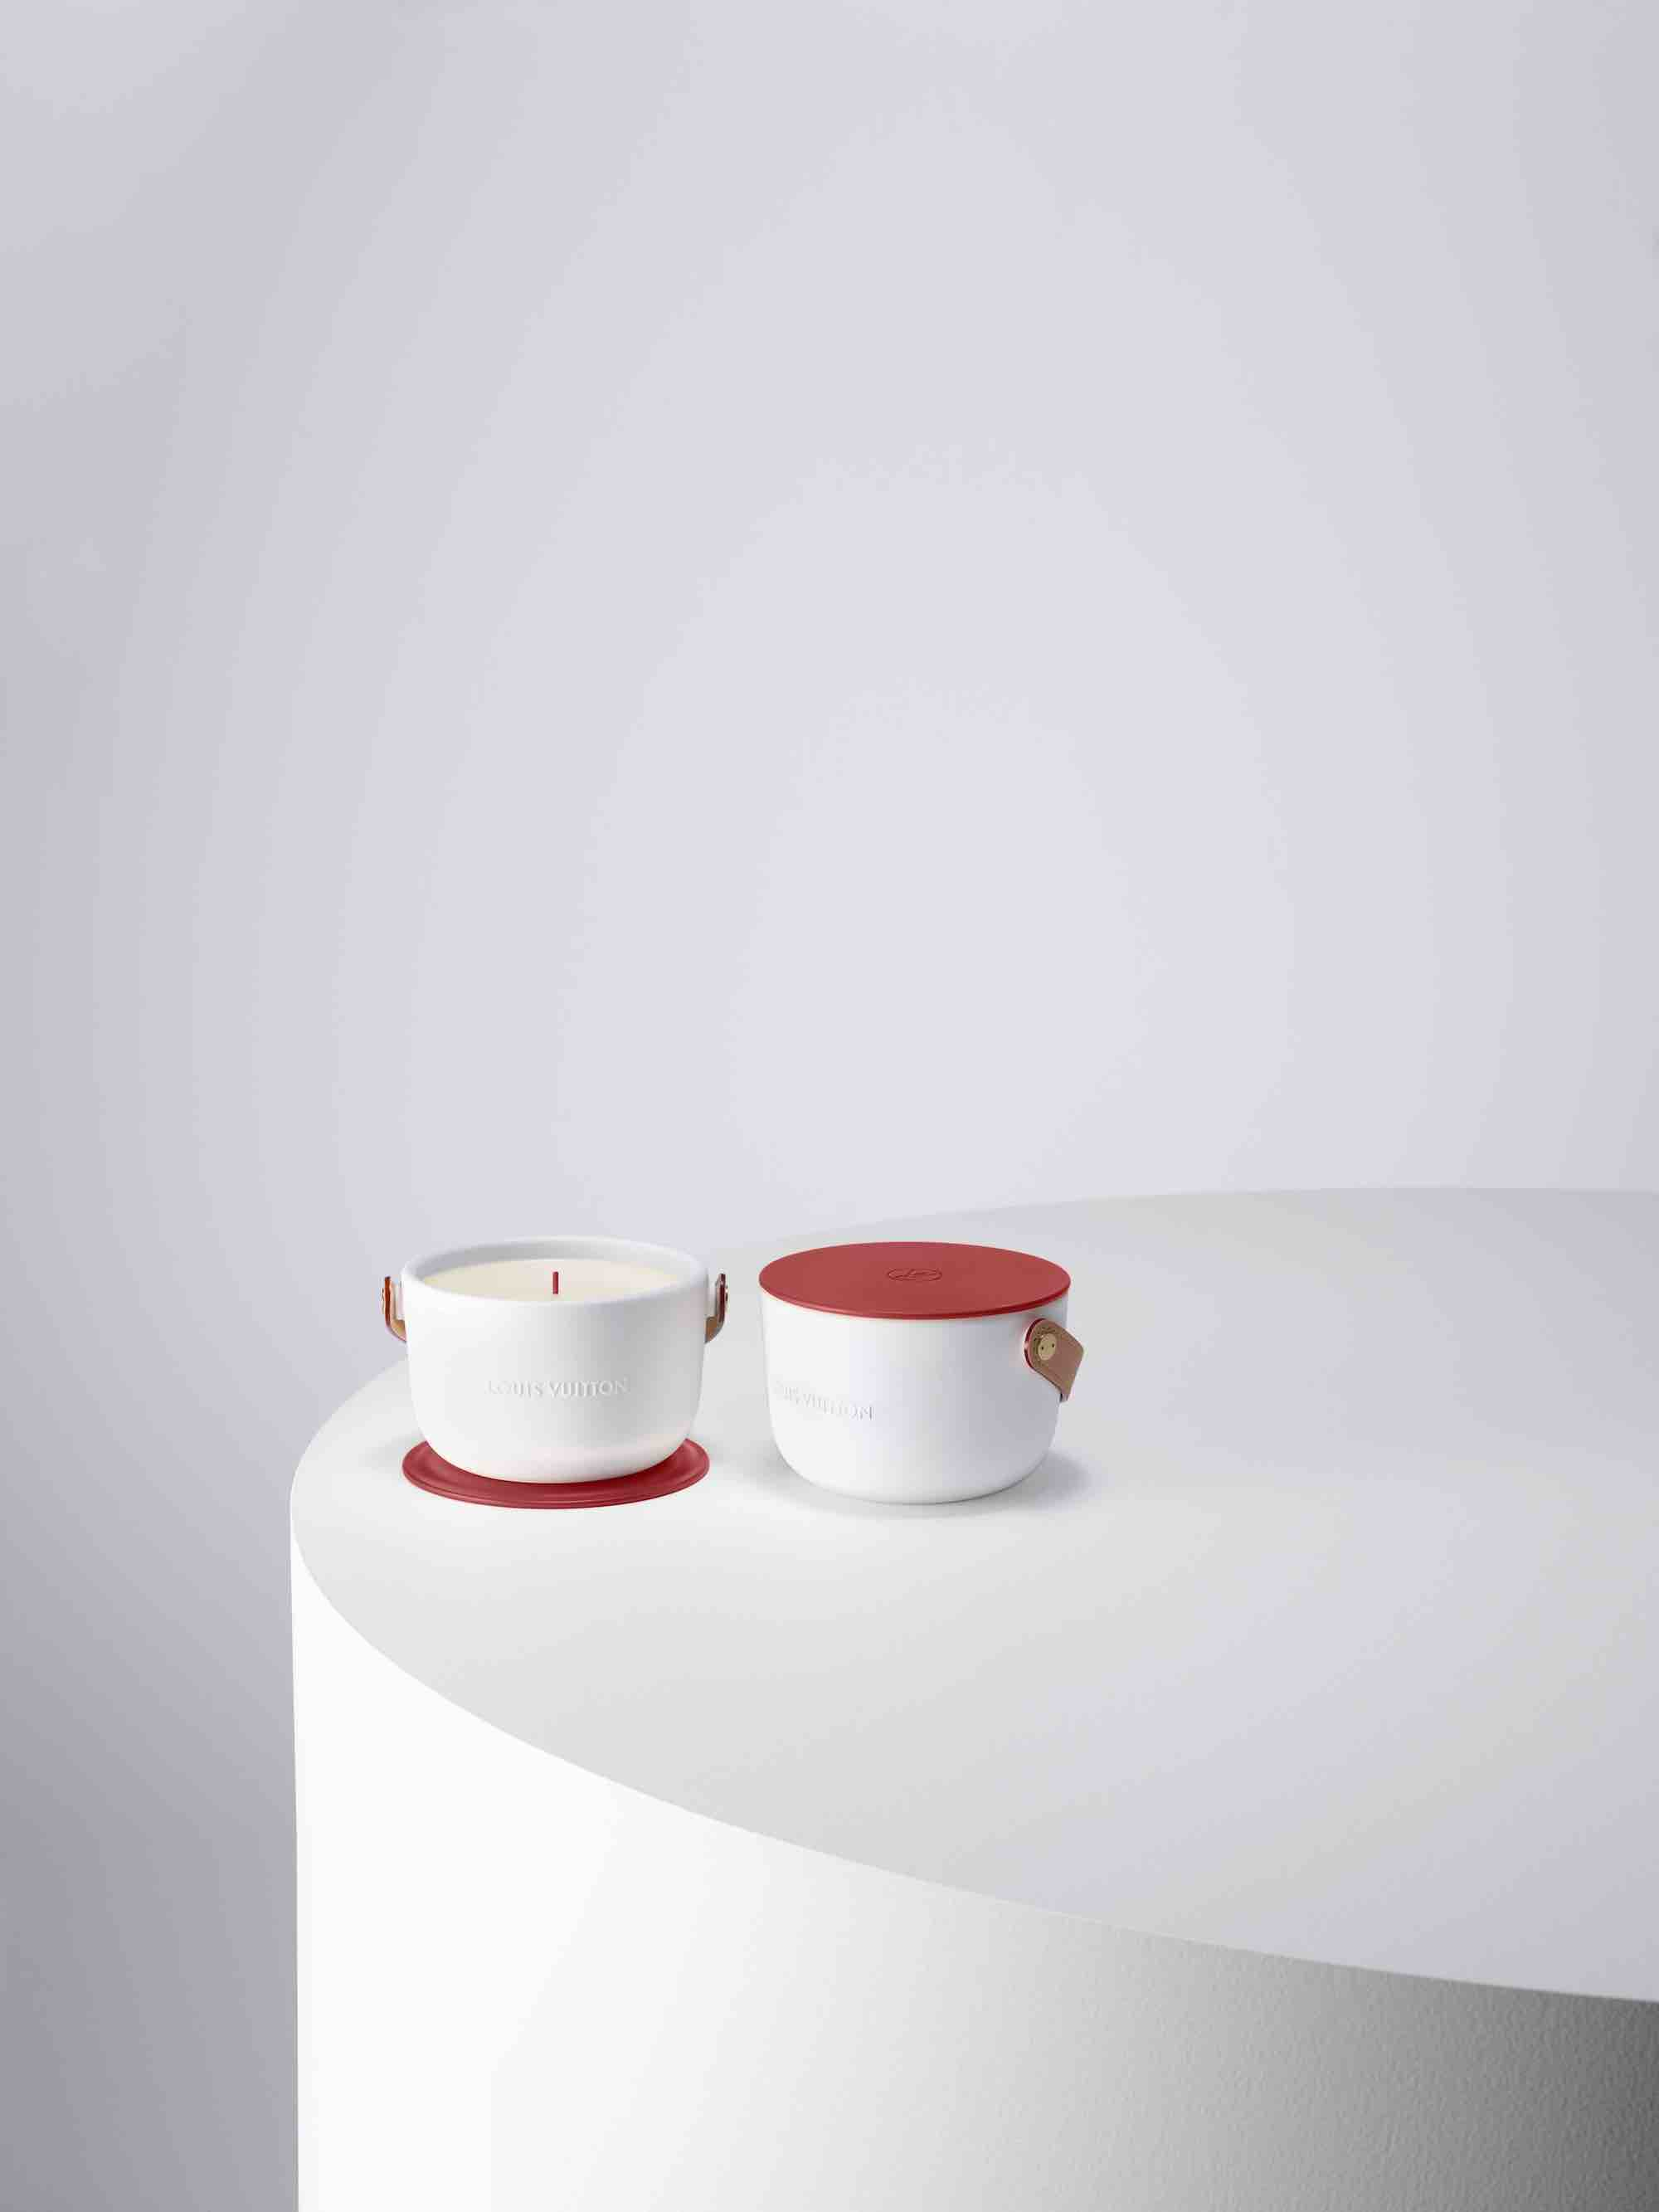 LOUIS VUITTON I (RED) CANDLE_RVB 02 table